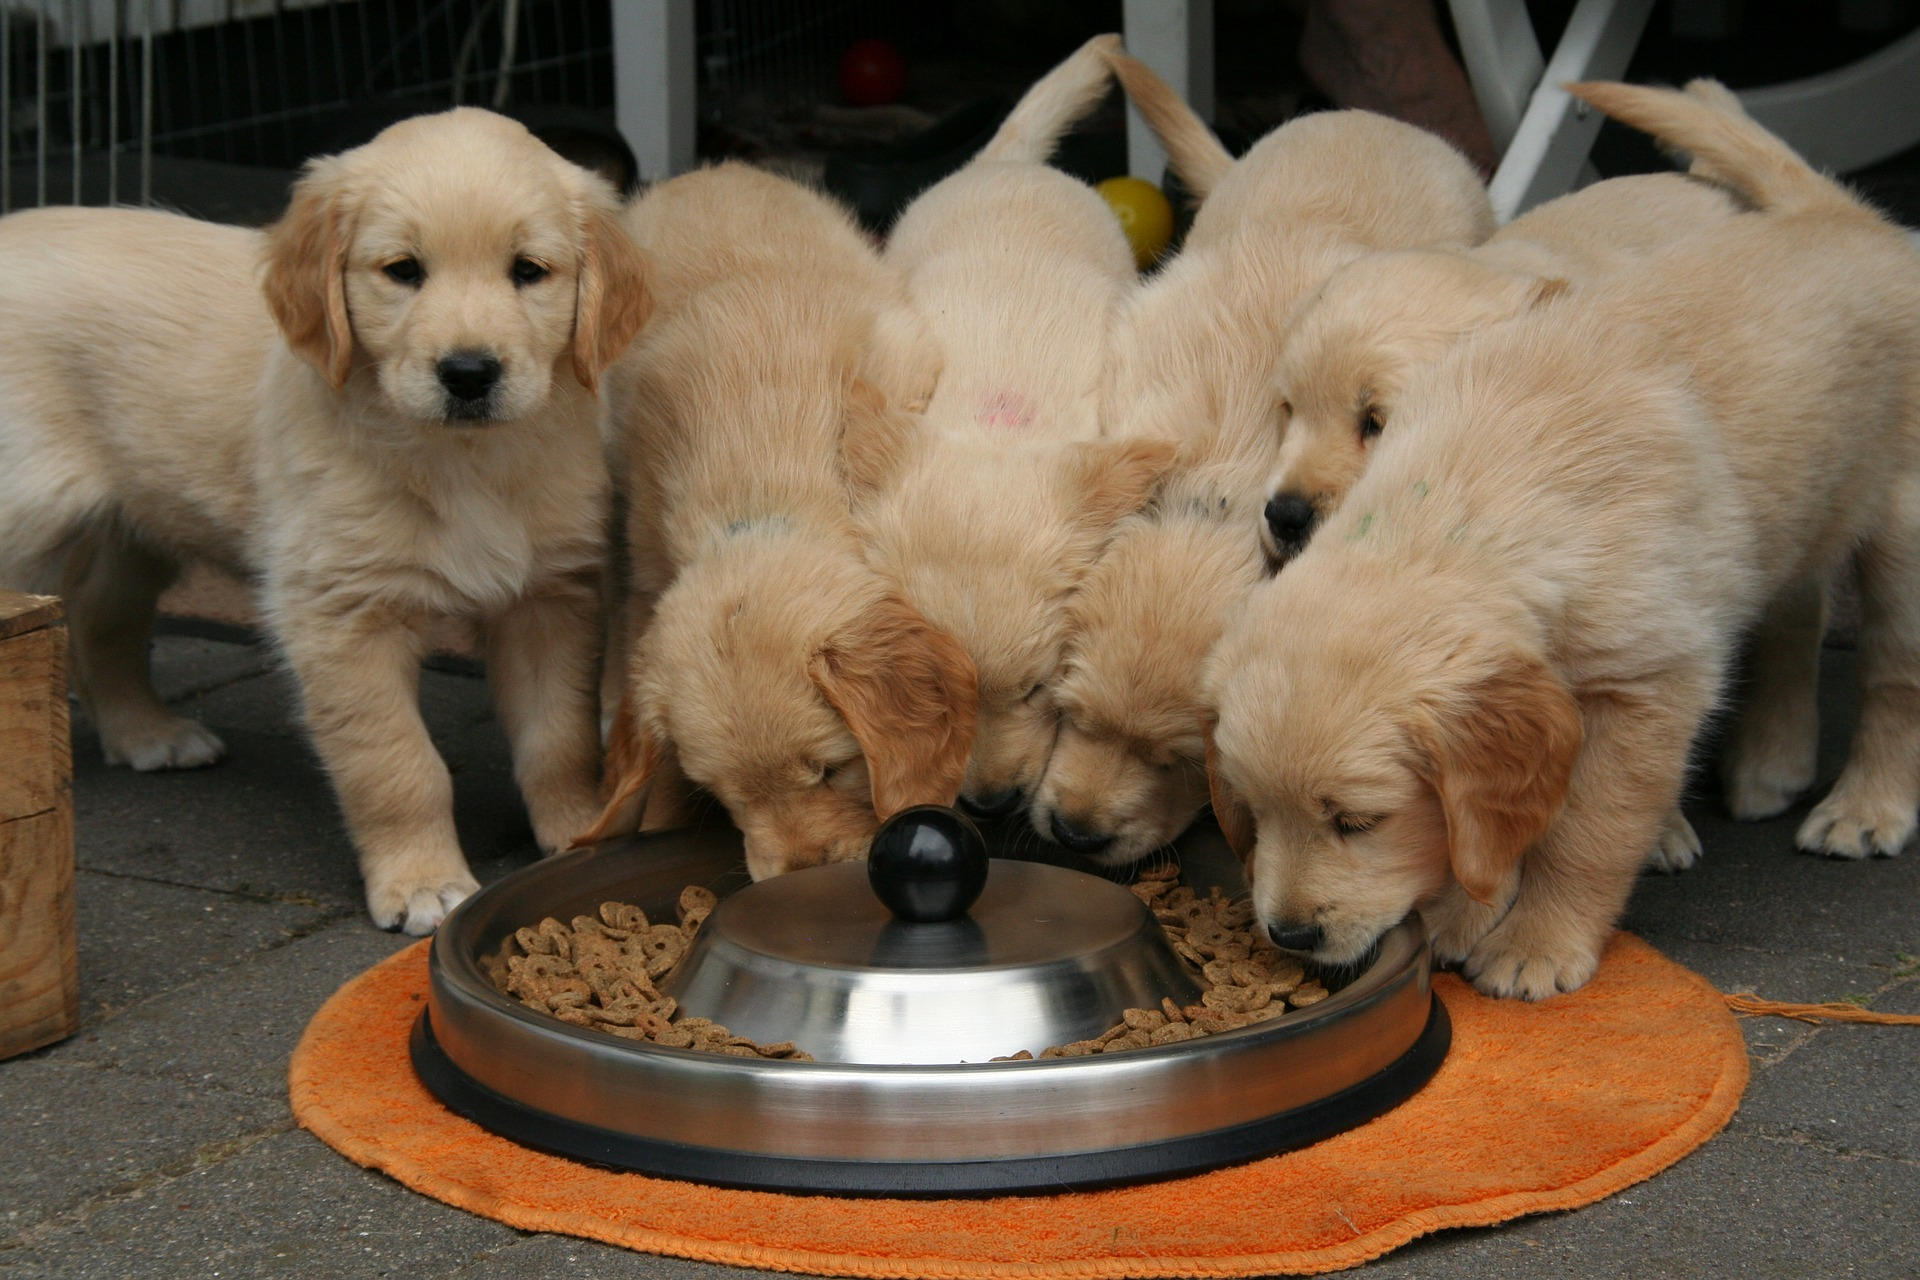 Golden retriever puppies eating out of a metal bowl